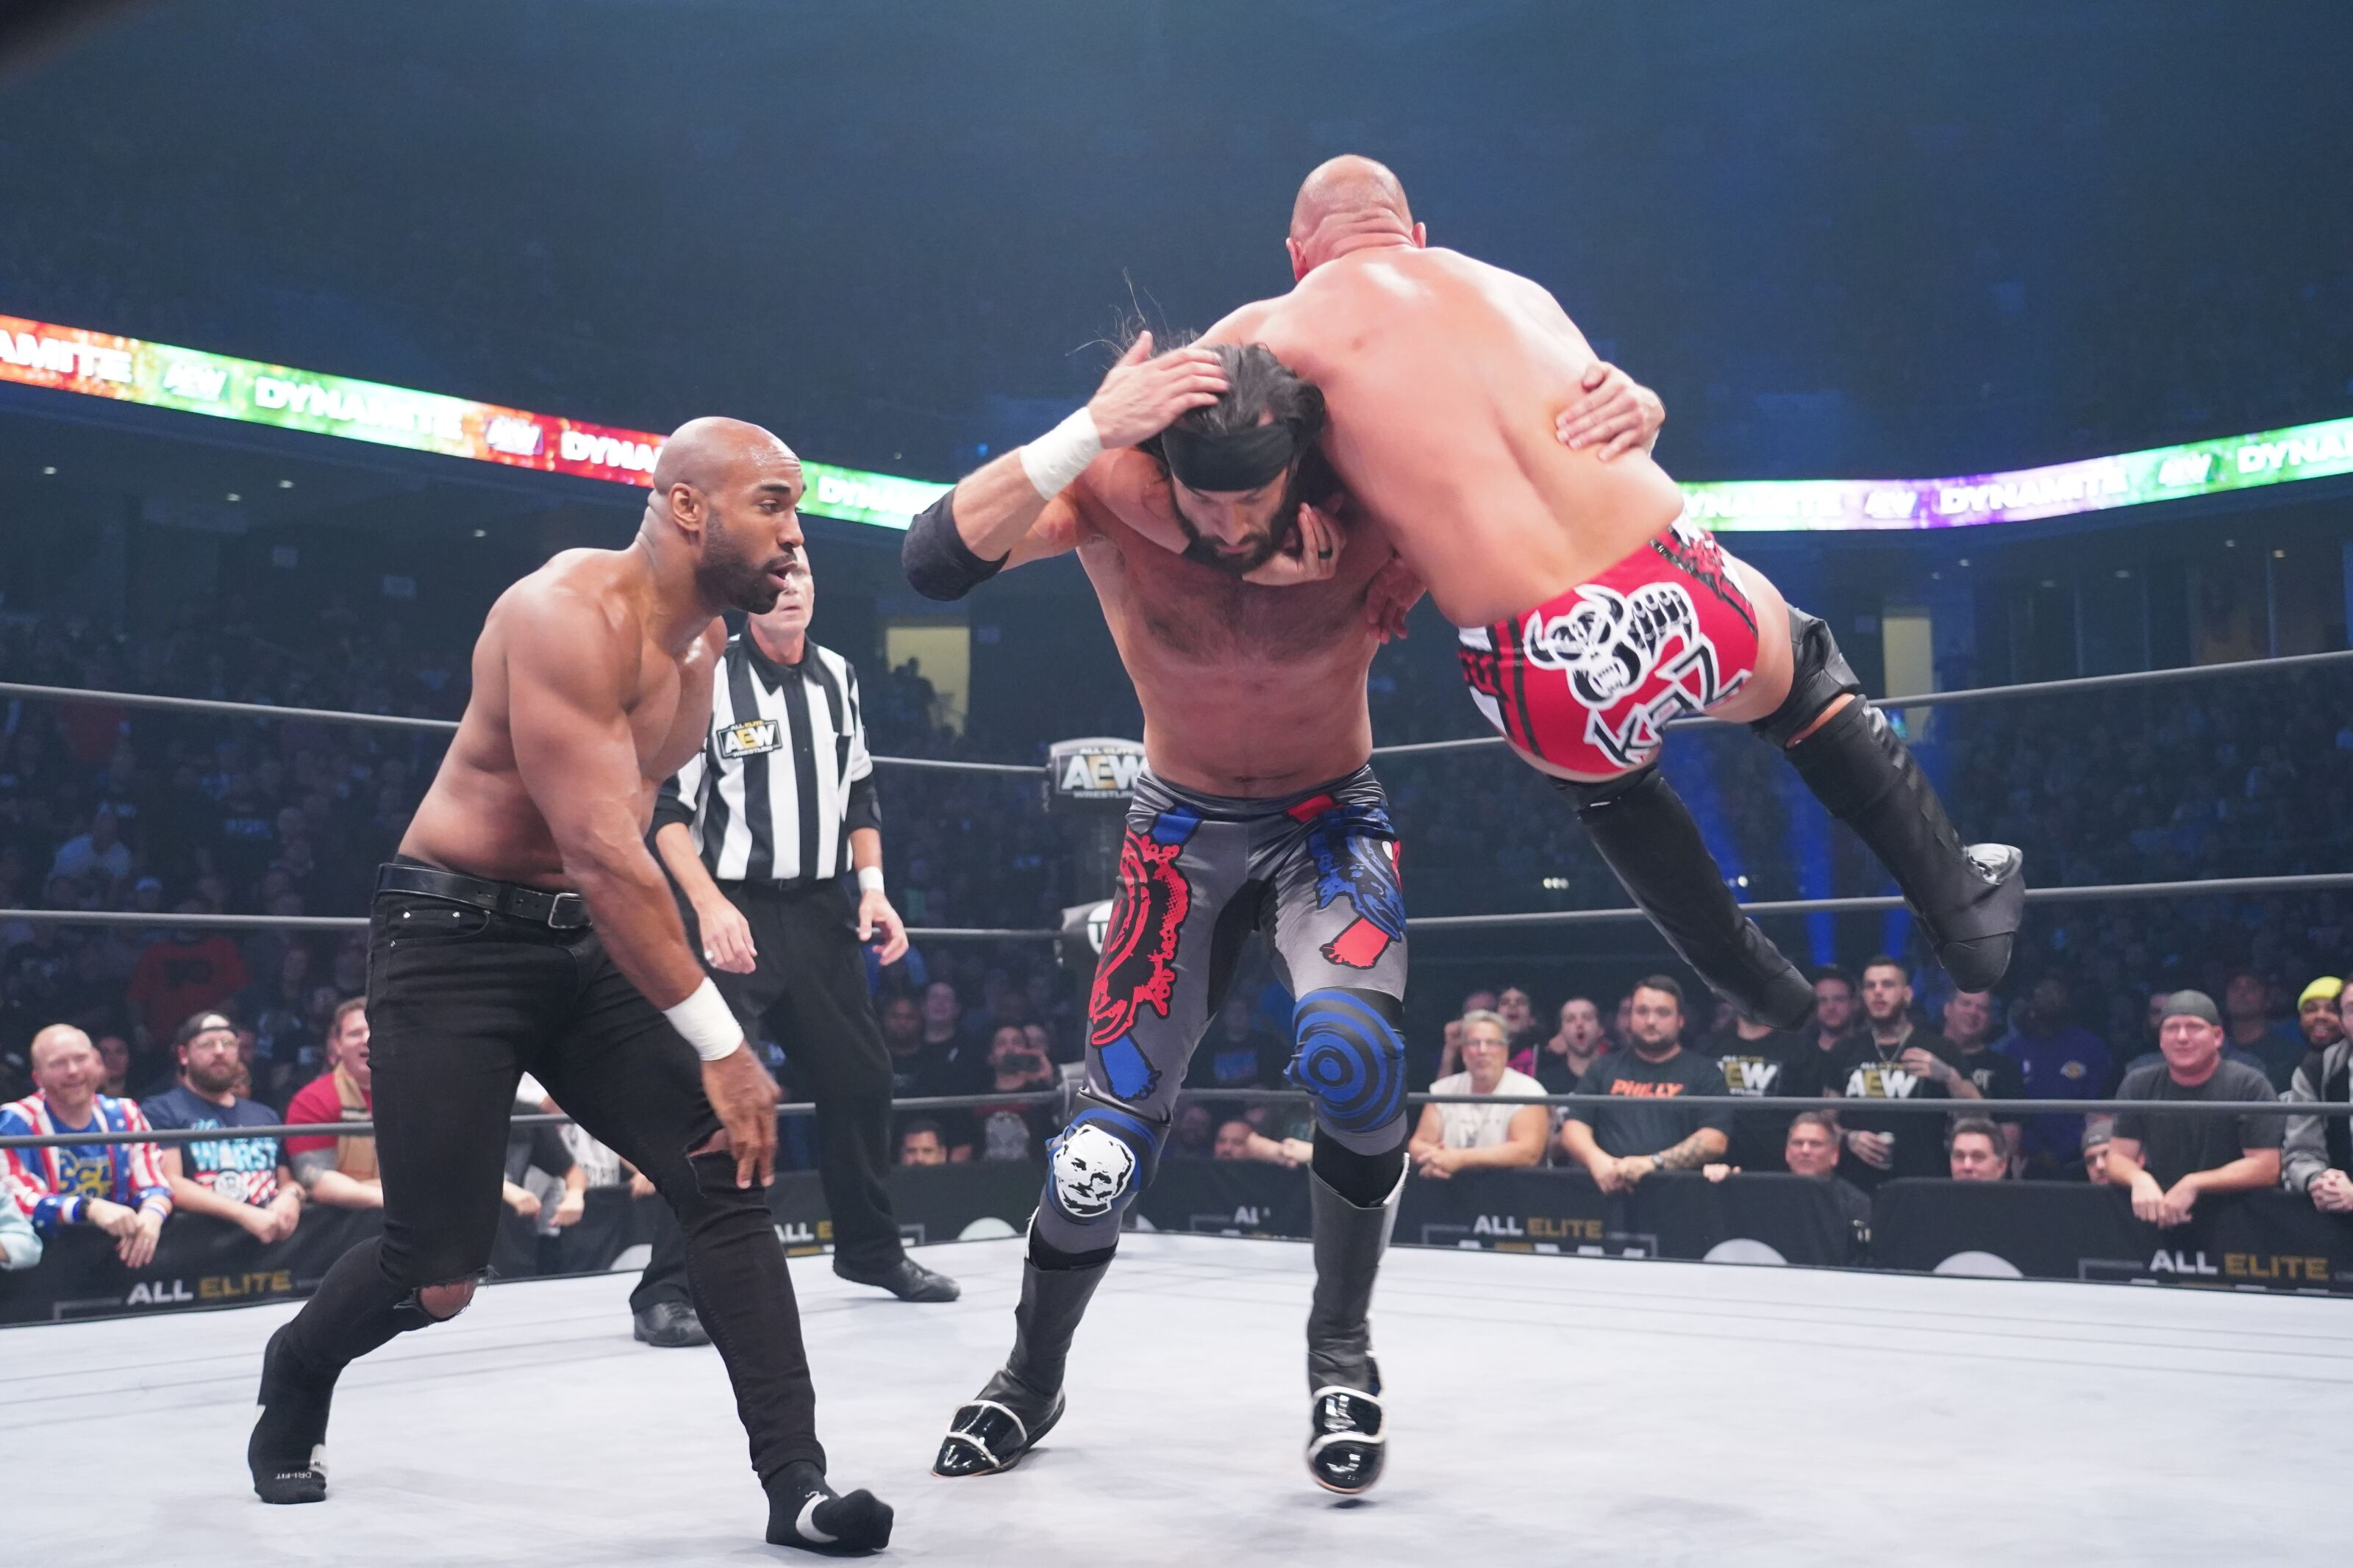 AEW Dynamite recap for October 16, 2019: Rise of the Painmaker